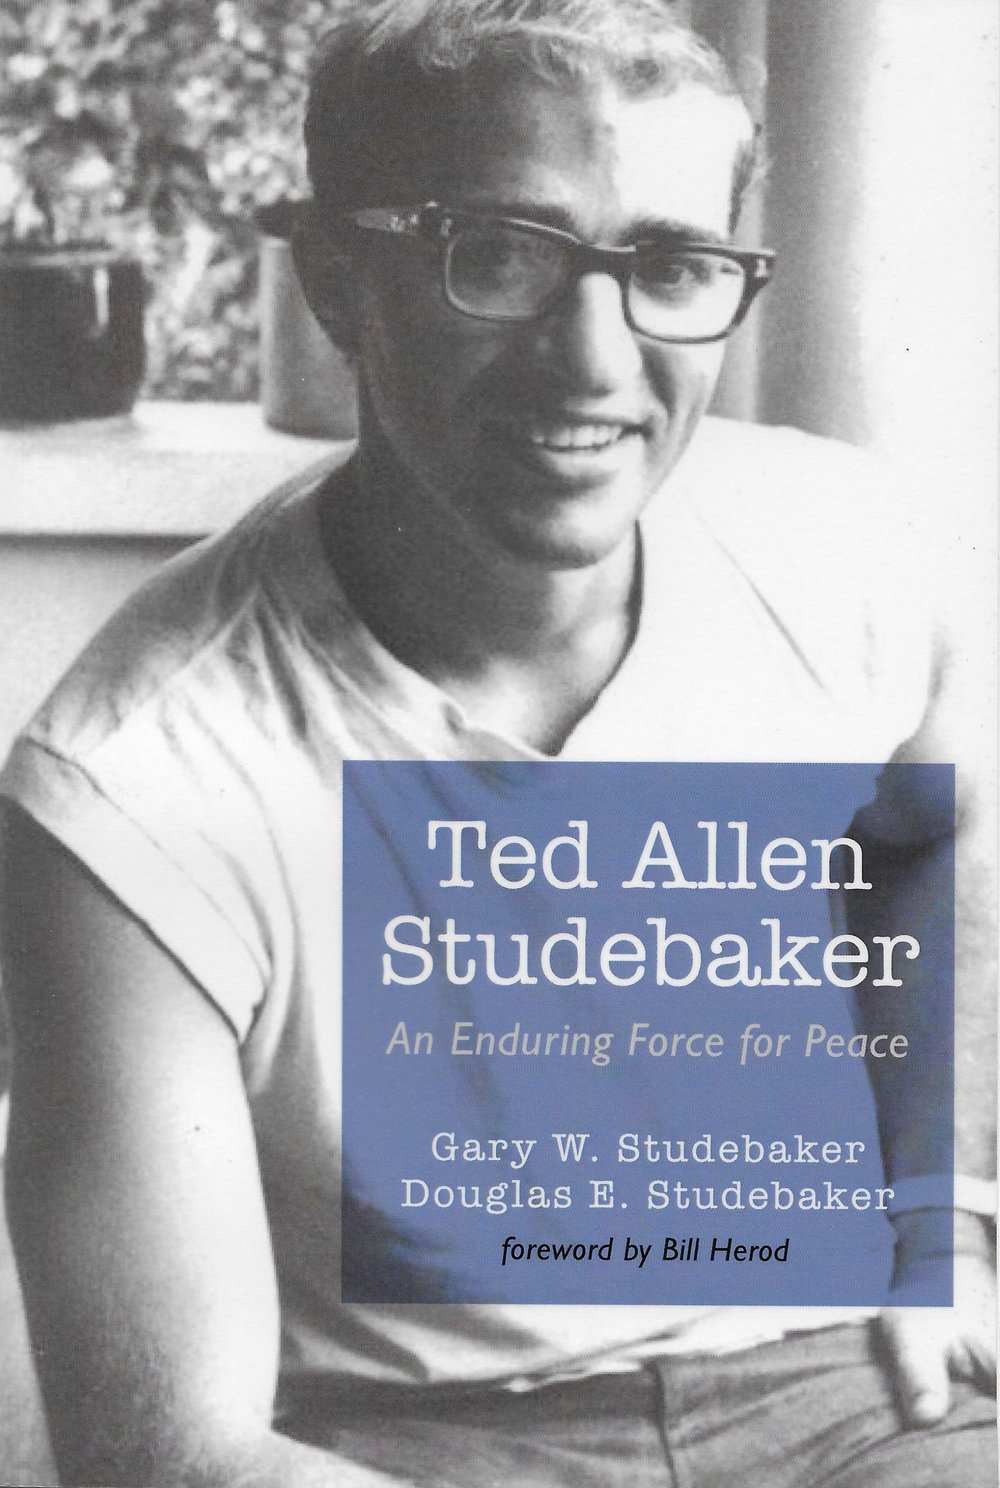 Studebaker Book Cover.jpeg